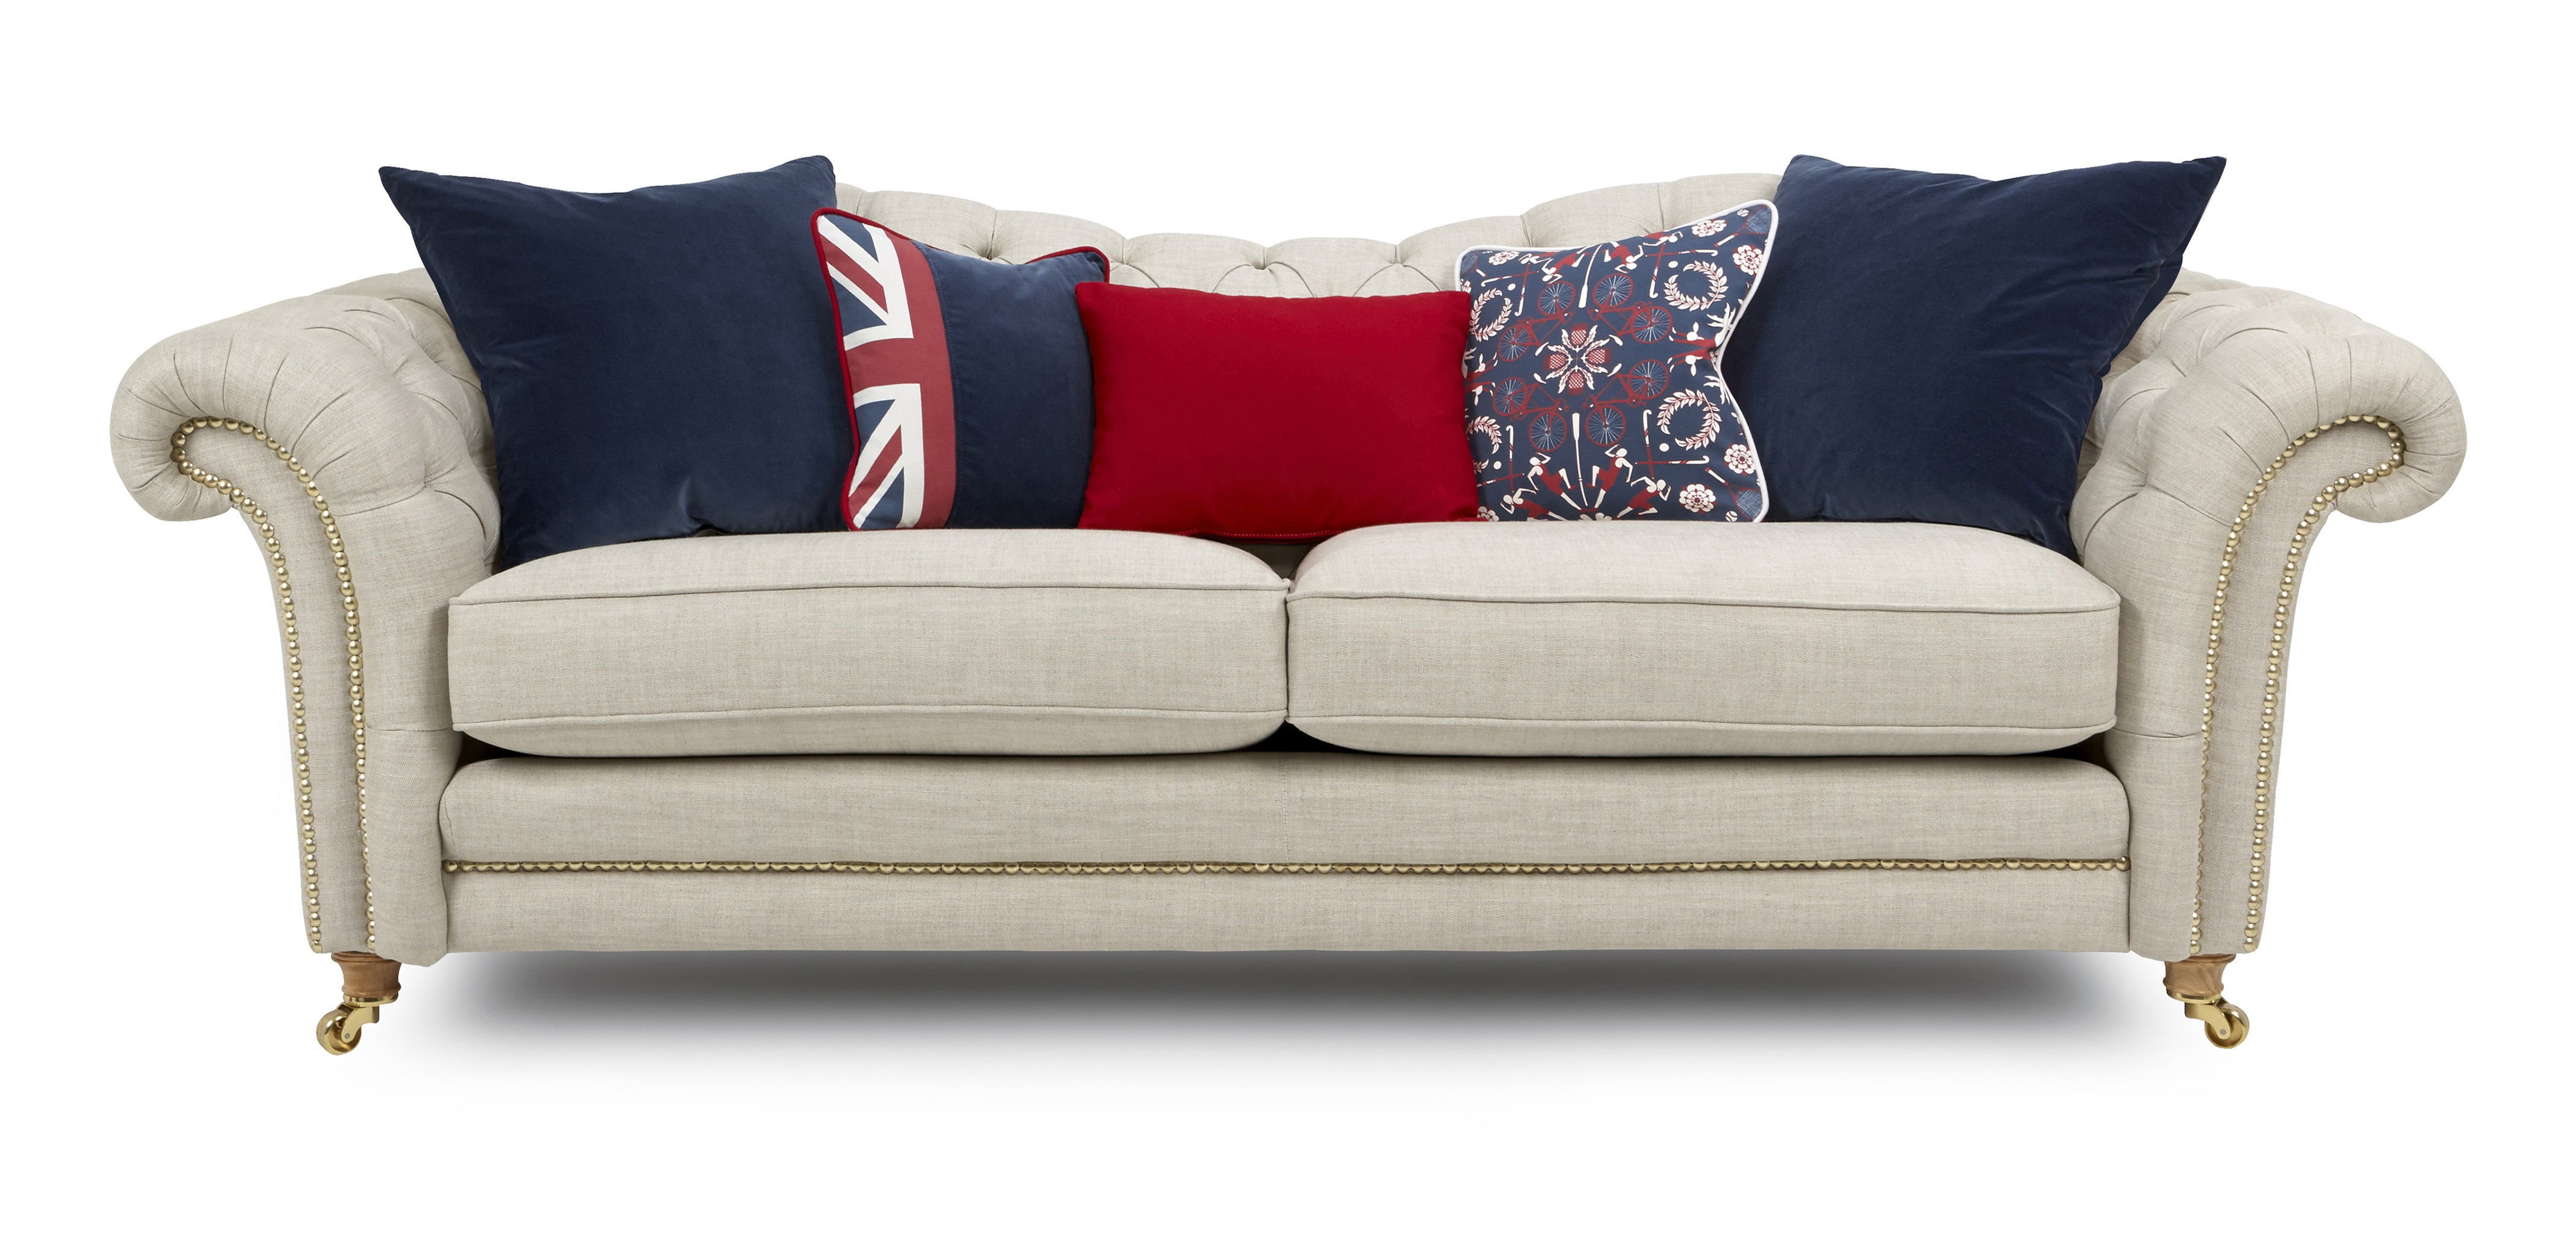 DFS THE OFFICIAL HOME-WARE PARTNER FOR TEAM GB Britannia sofa with cushions